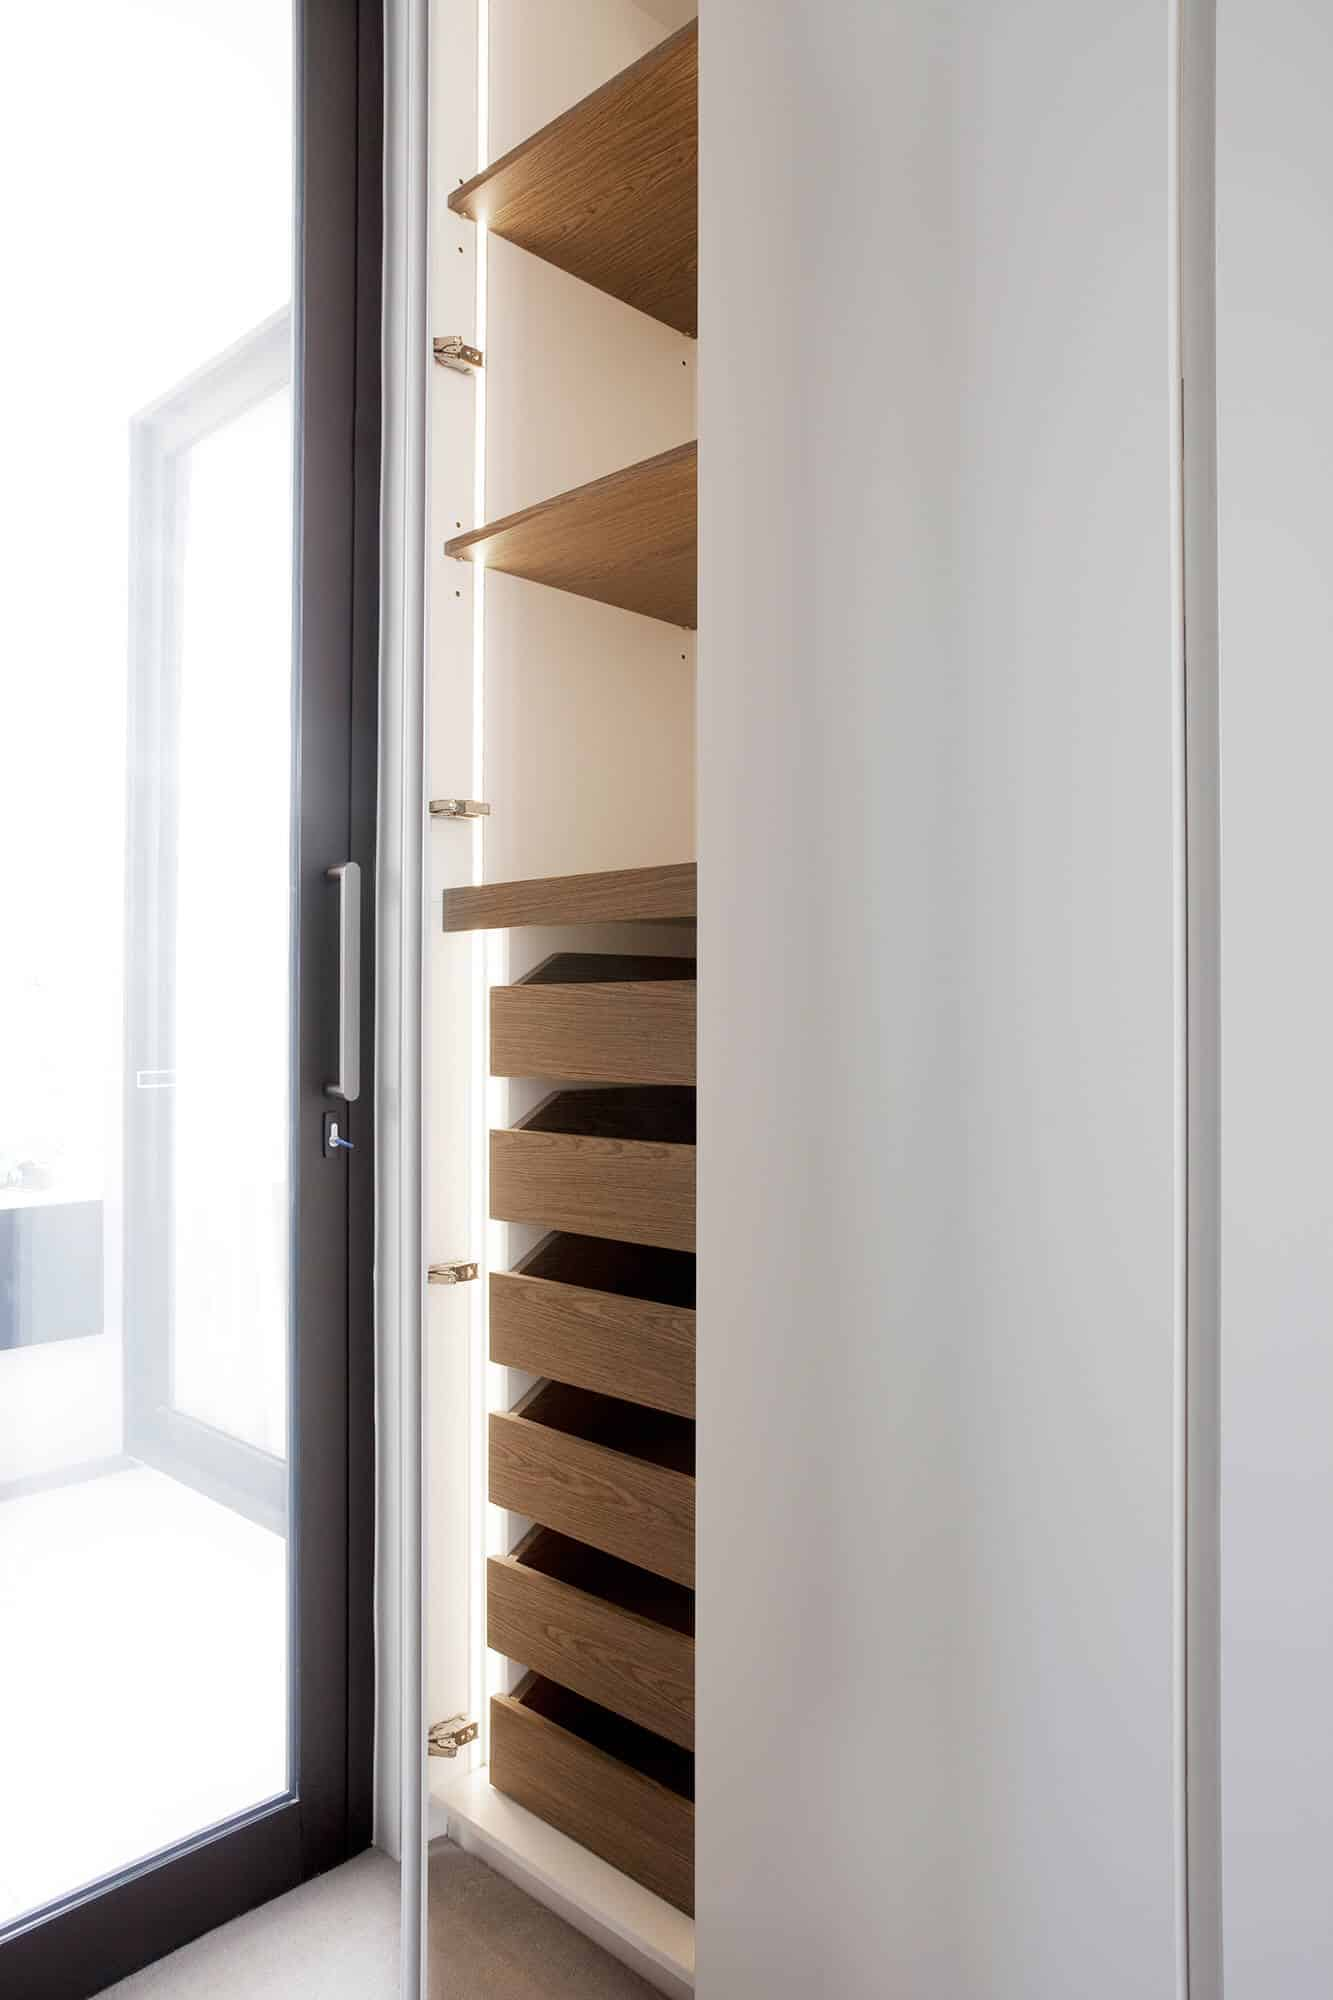 Custom Wardrobes | Walk in Wardrobes | Whole House Joinery